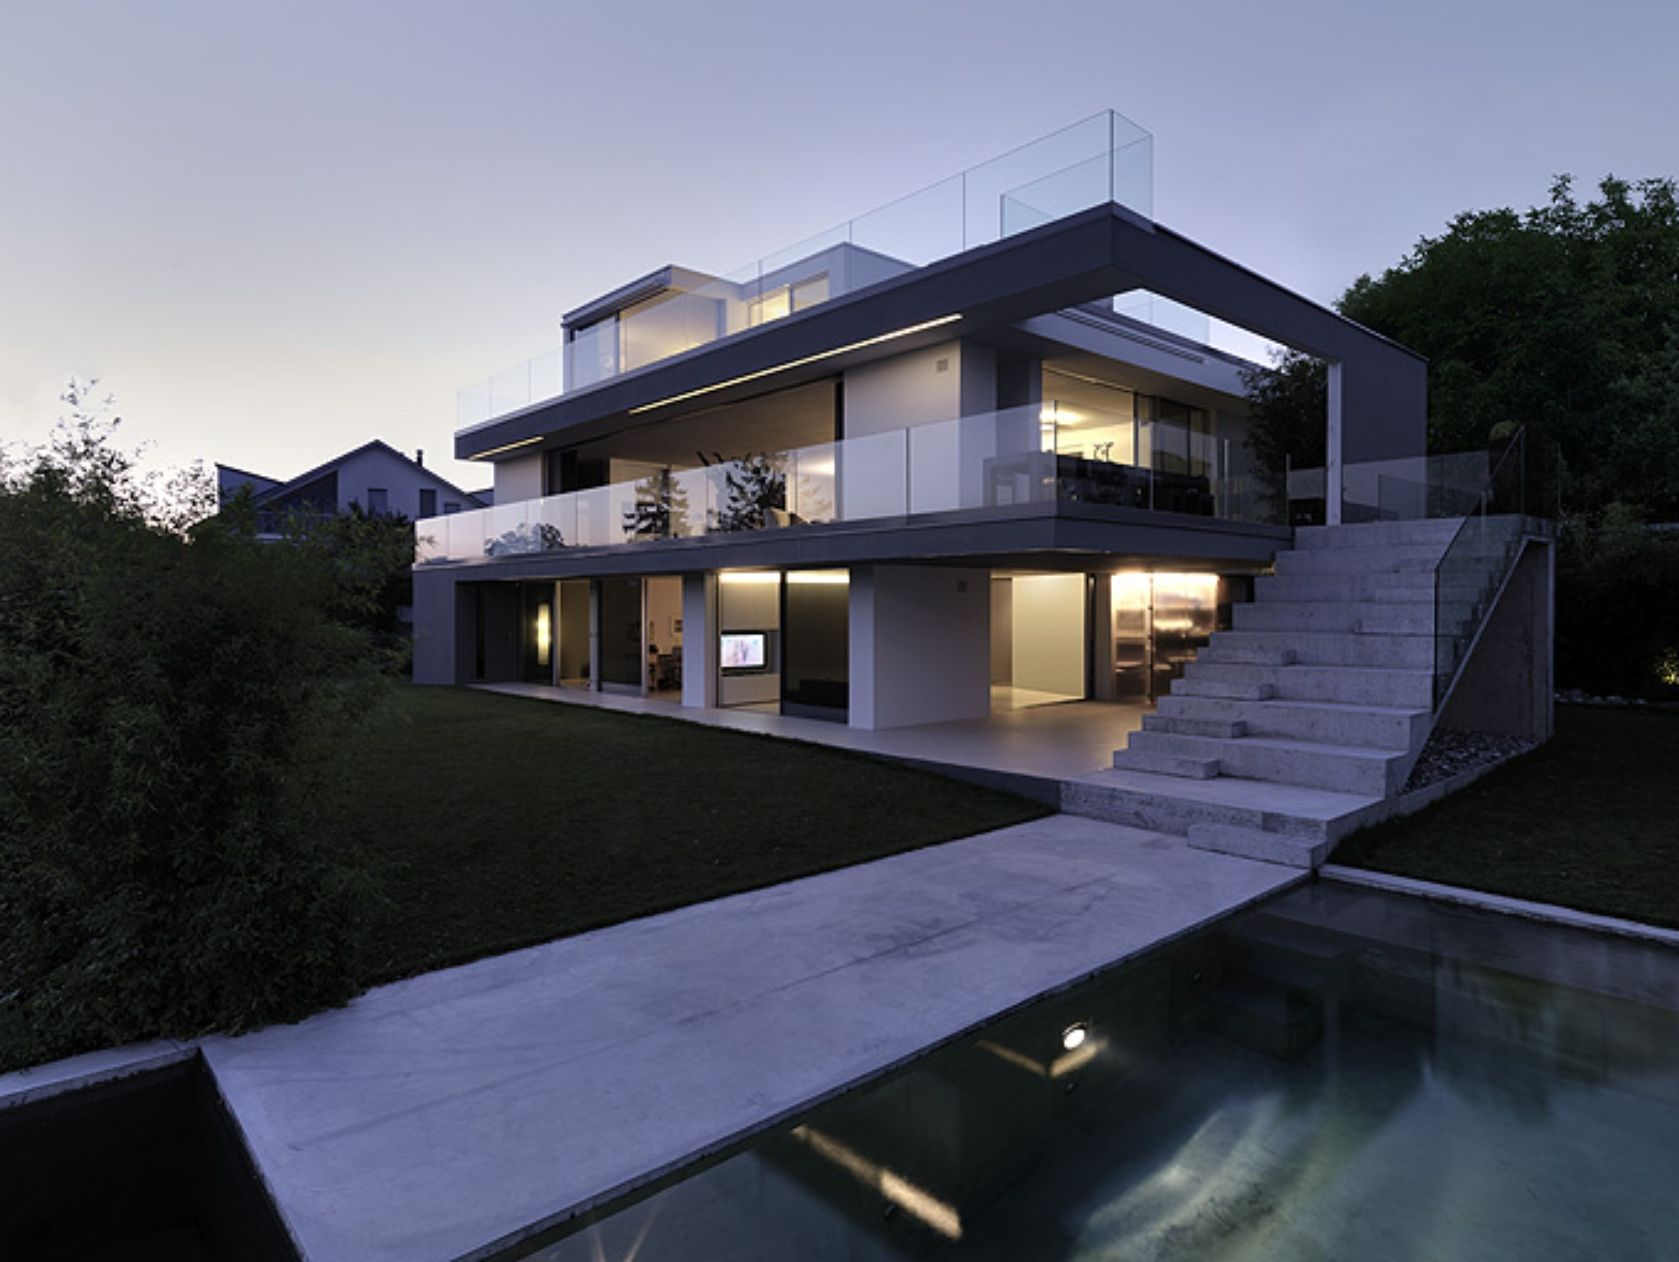 Feldbalz House by Gus Wuestemann Architects | MR.GOODLIFE. - The ...